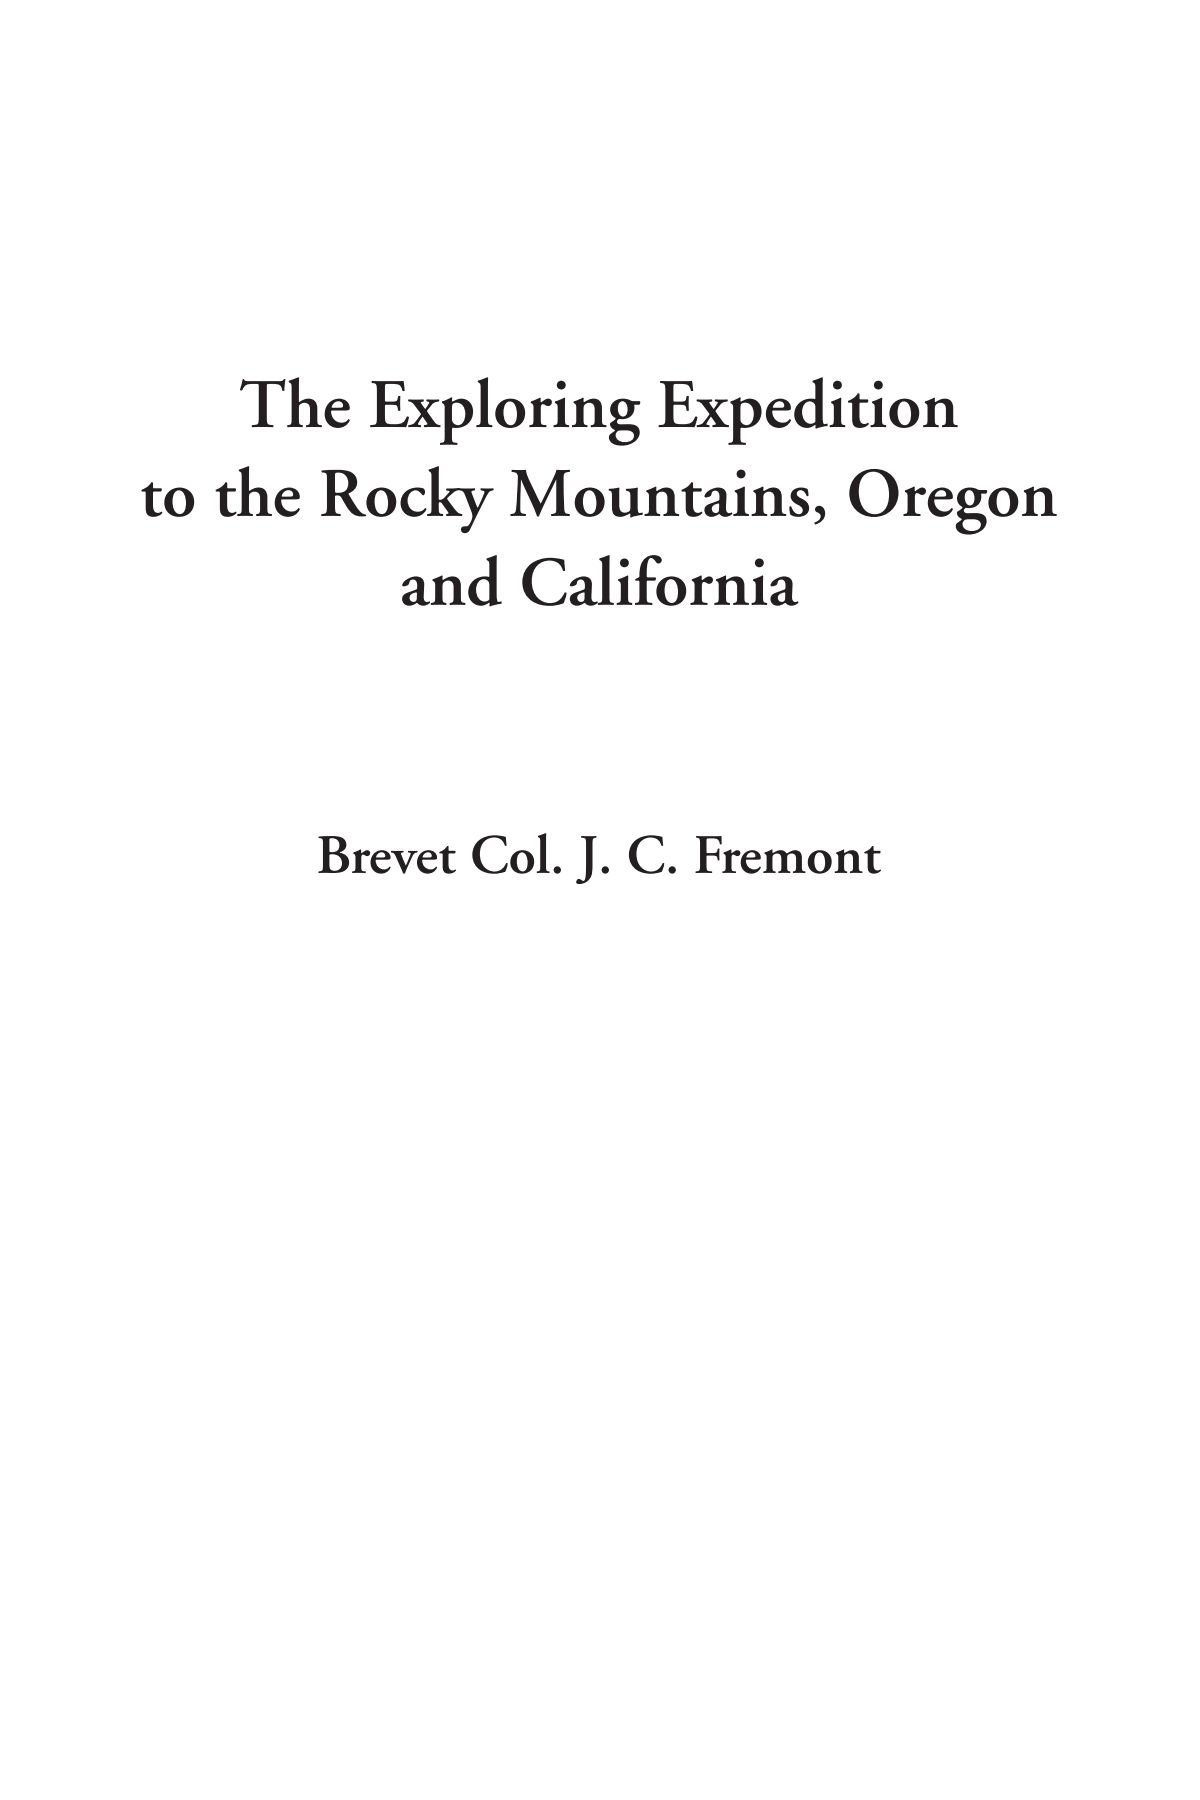 Download The Exploring Expedition to the Rocky Mountains, Oregon and California PDF